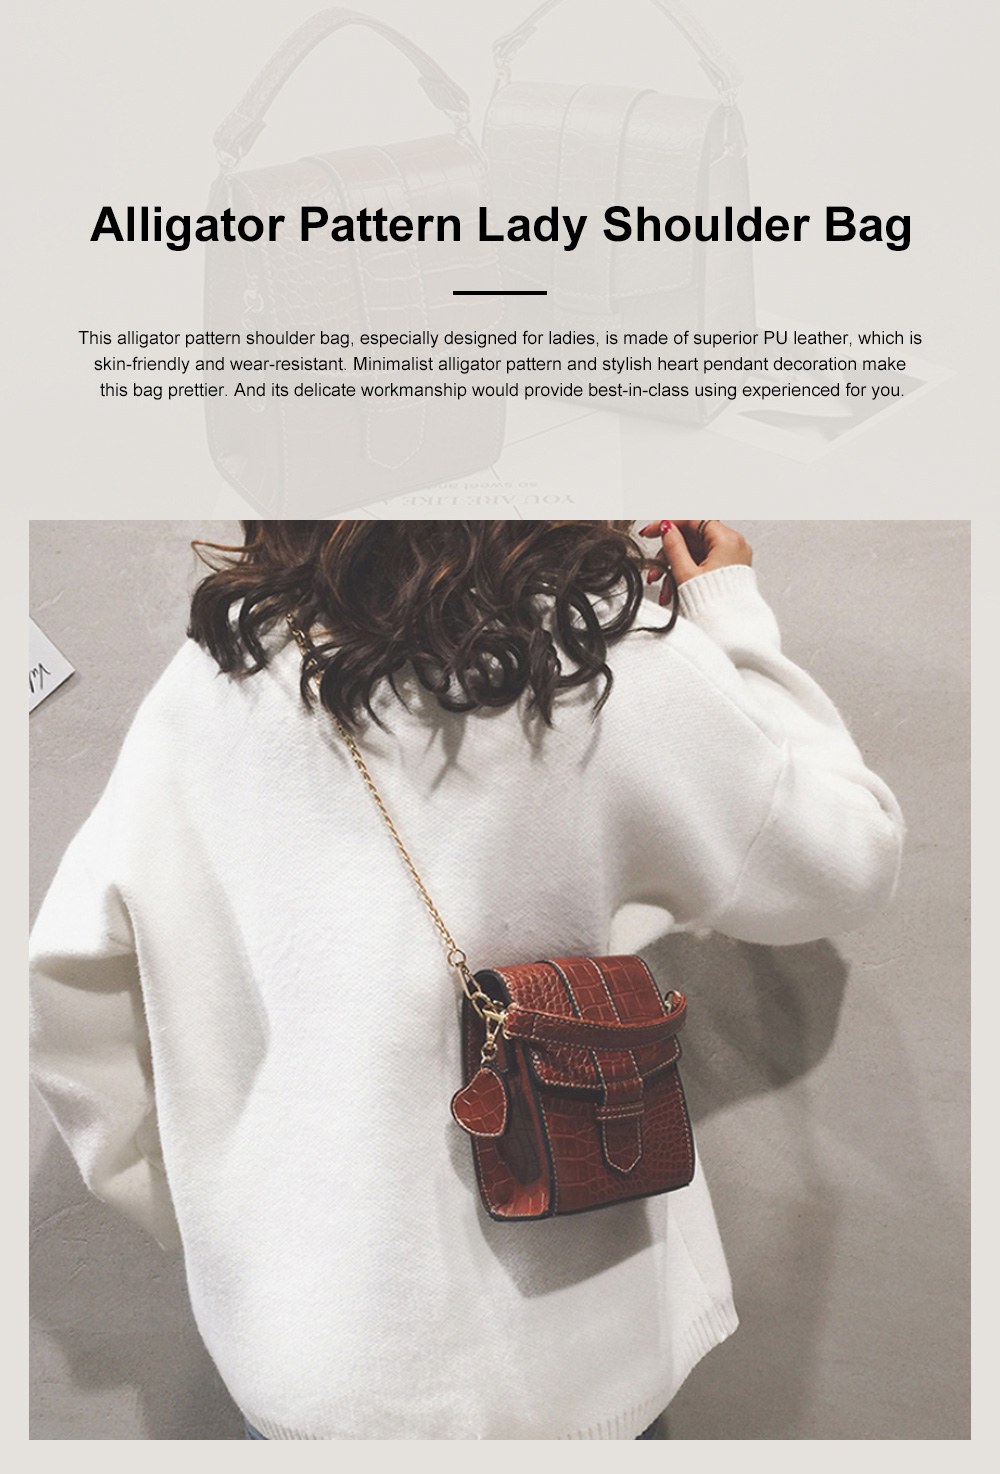 Minimalist Alligator Pattern Chain Lady Shoulder Bag, Skin-friendly PU Leather Small Handle Bag for Women 0